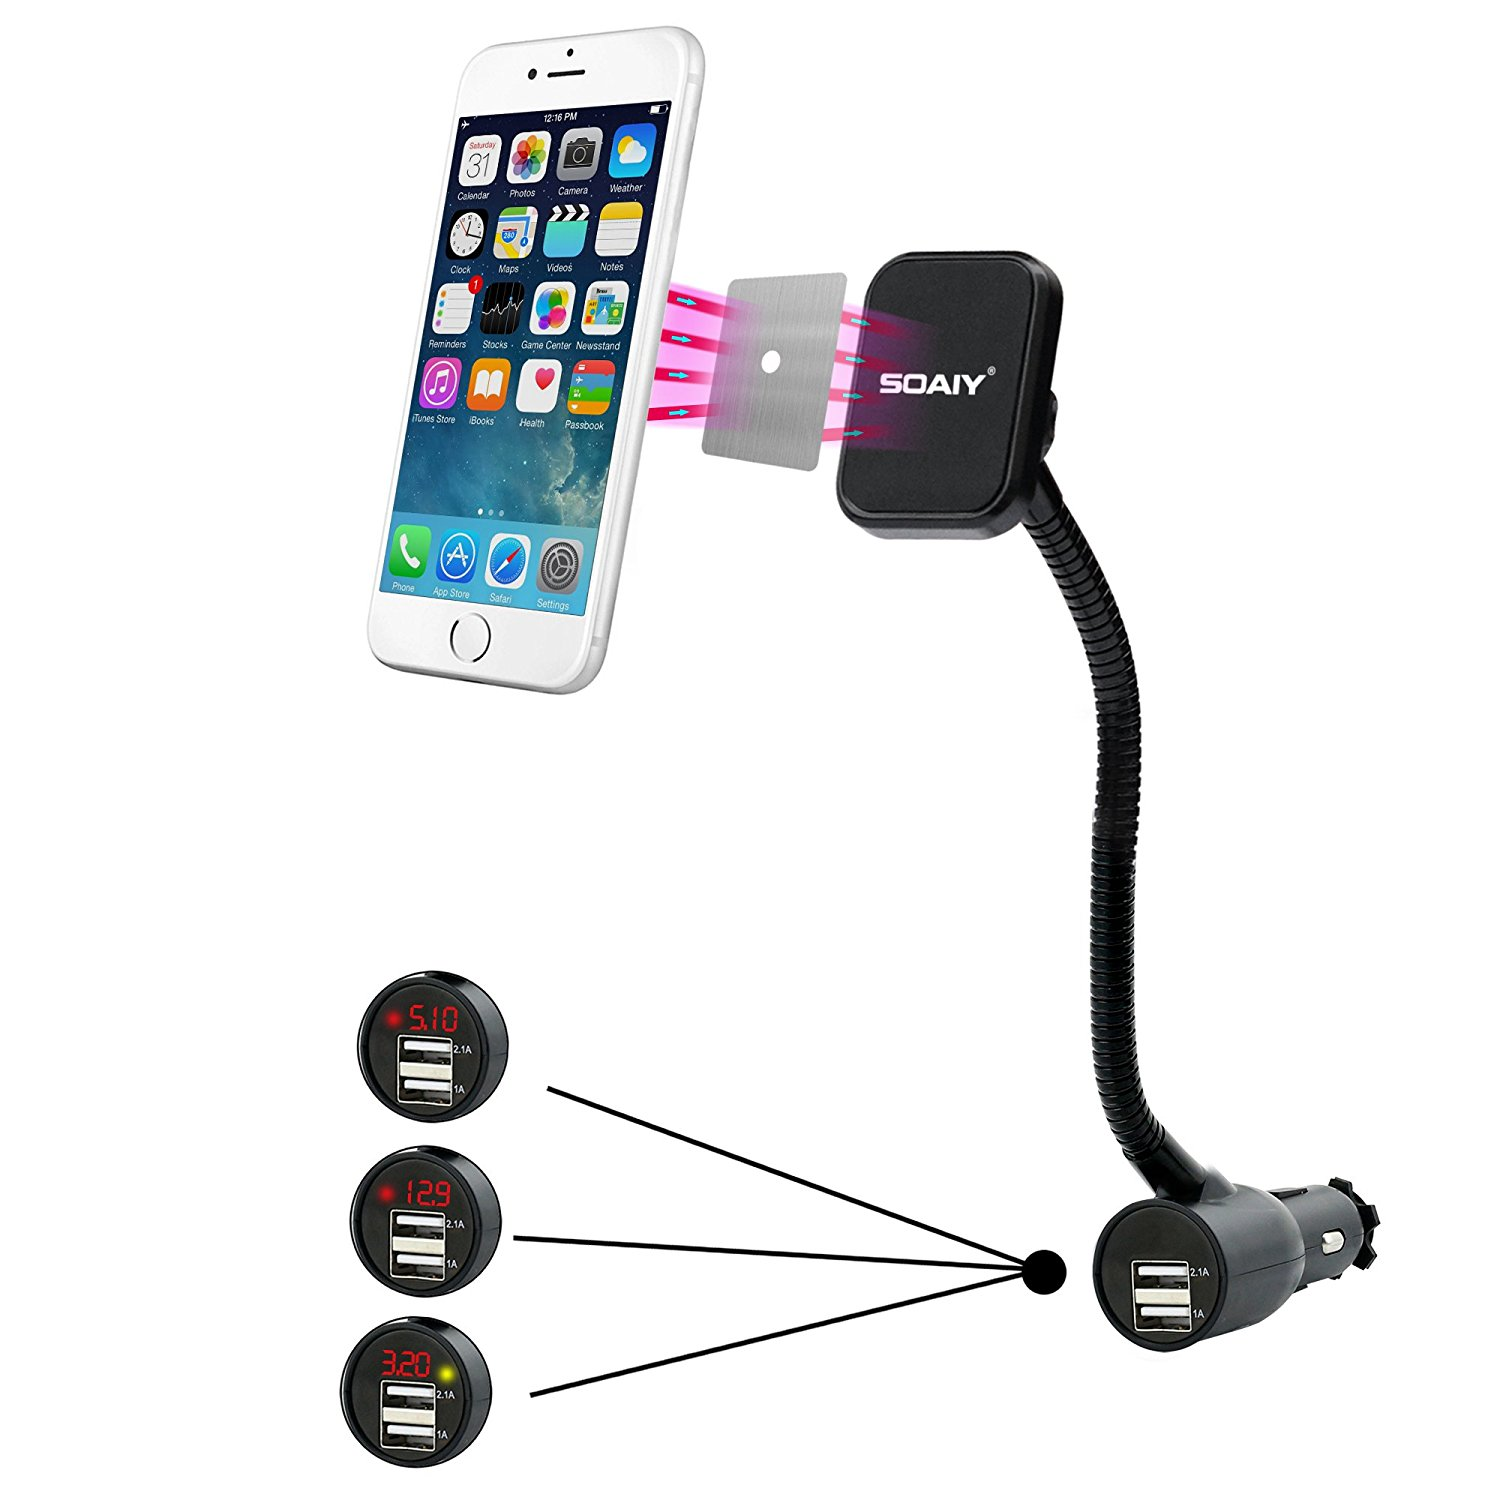 Magnetic Phone Mount, SOAIY 3-in-1 Cigarette Lighter Cell Phone Holder for Car + 2 USB Port Car Charger + Voltage Detector, for iPhone X 8 8 Plus 7 Samsung Galaxy S9 S8 S7 LG Nexus Sony Nokia and More